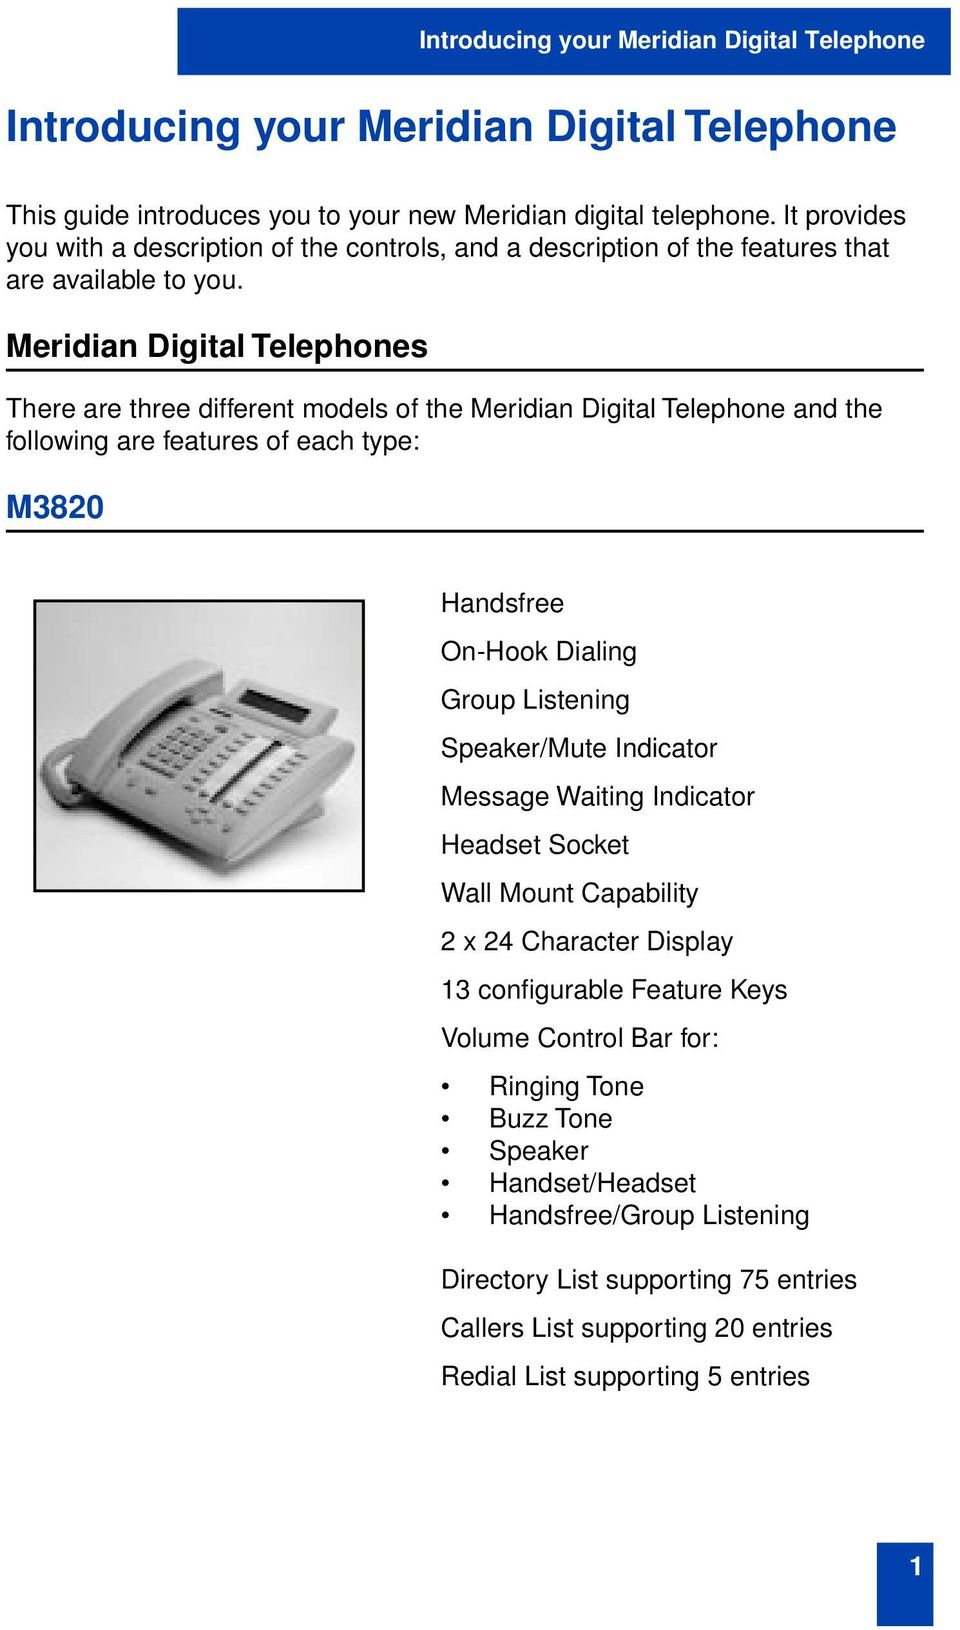 Meridian Digital Telephones There are three different models of the Meridian Digital Telephone and the following are features of each type: M3820 Handsfree On-Hook Dialing Group Listening